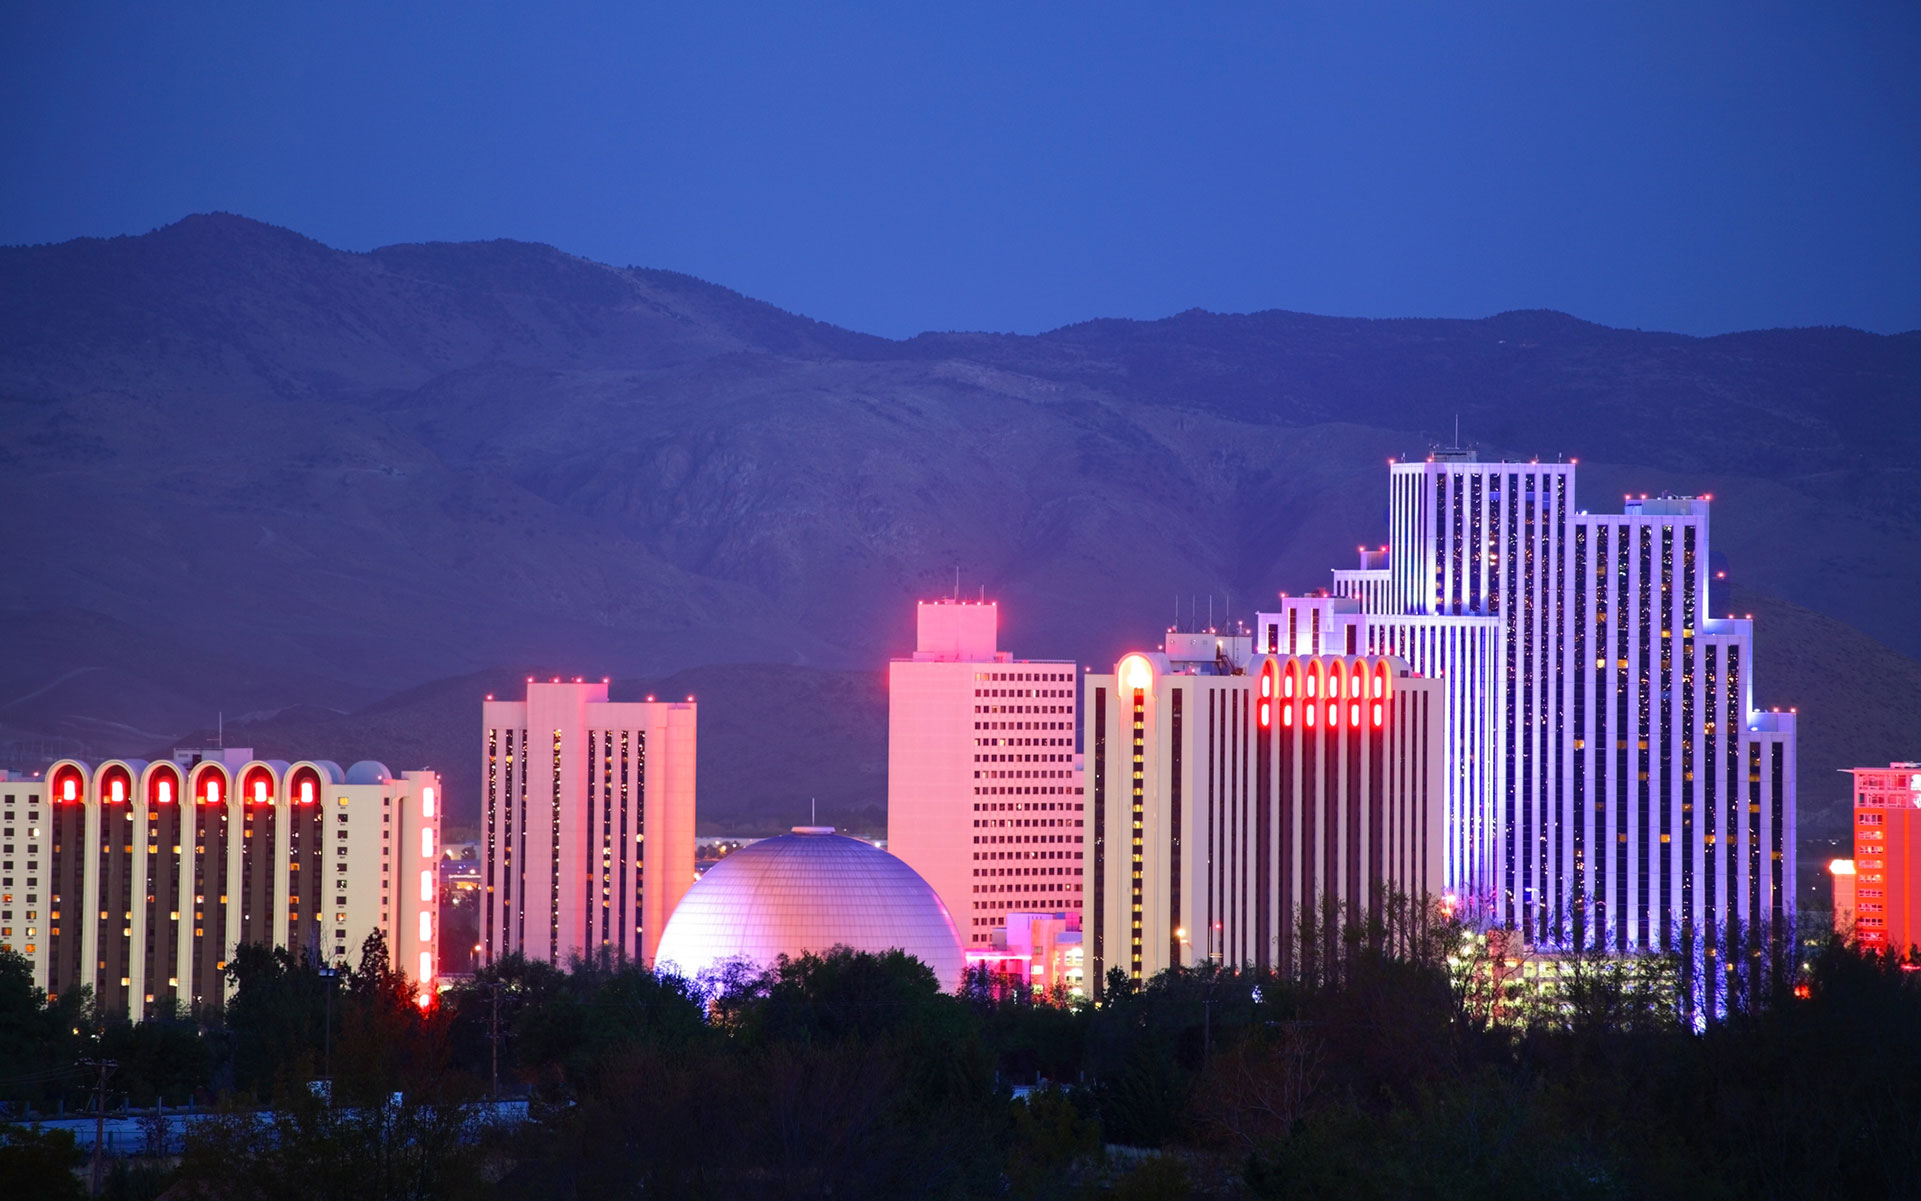 In Nevada, Legal Cannabis Added $1 Billion Impact to State Economy thumbnail